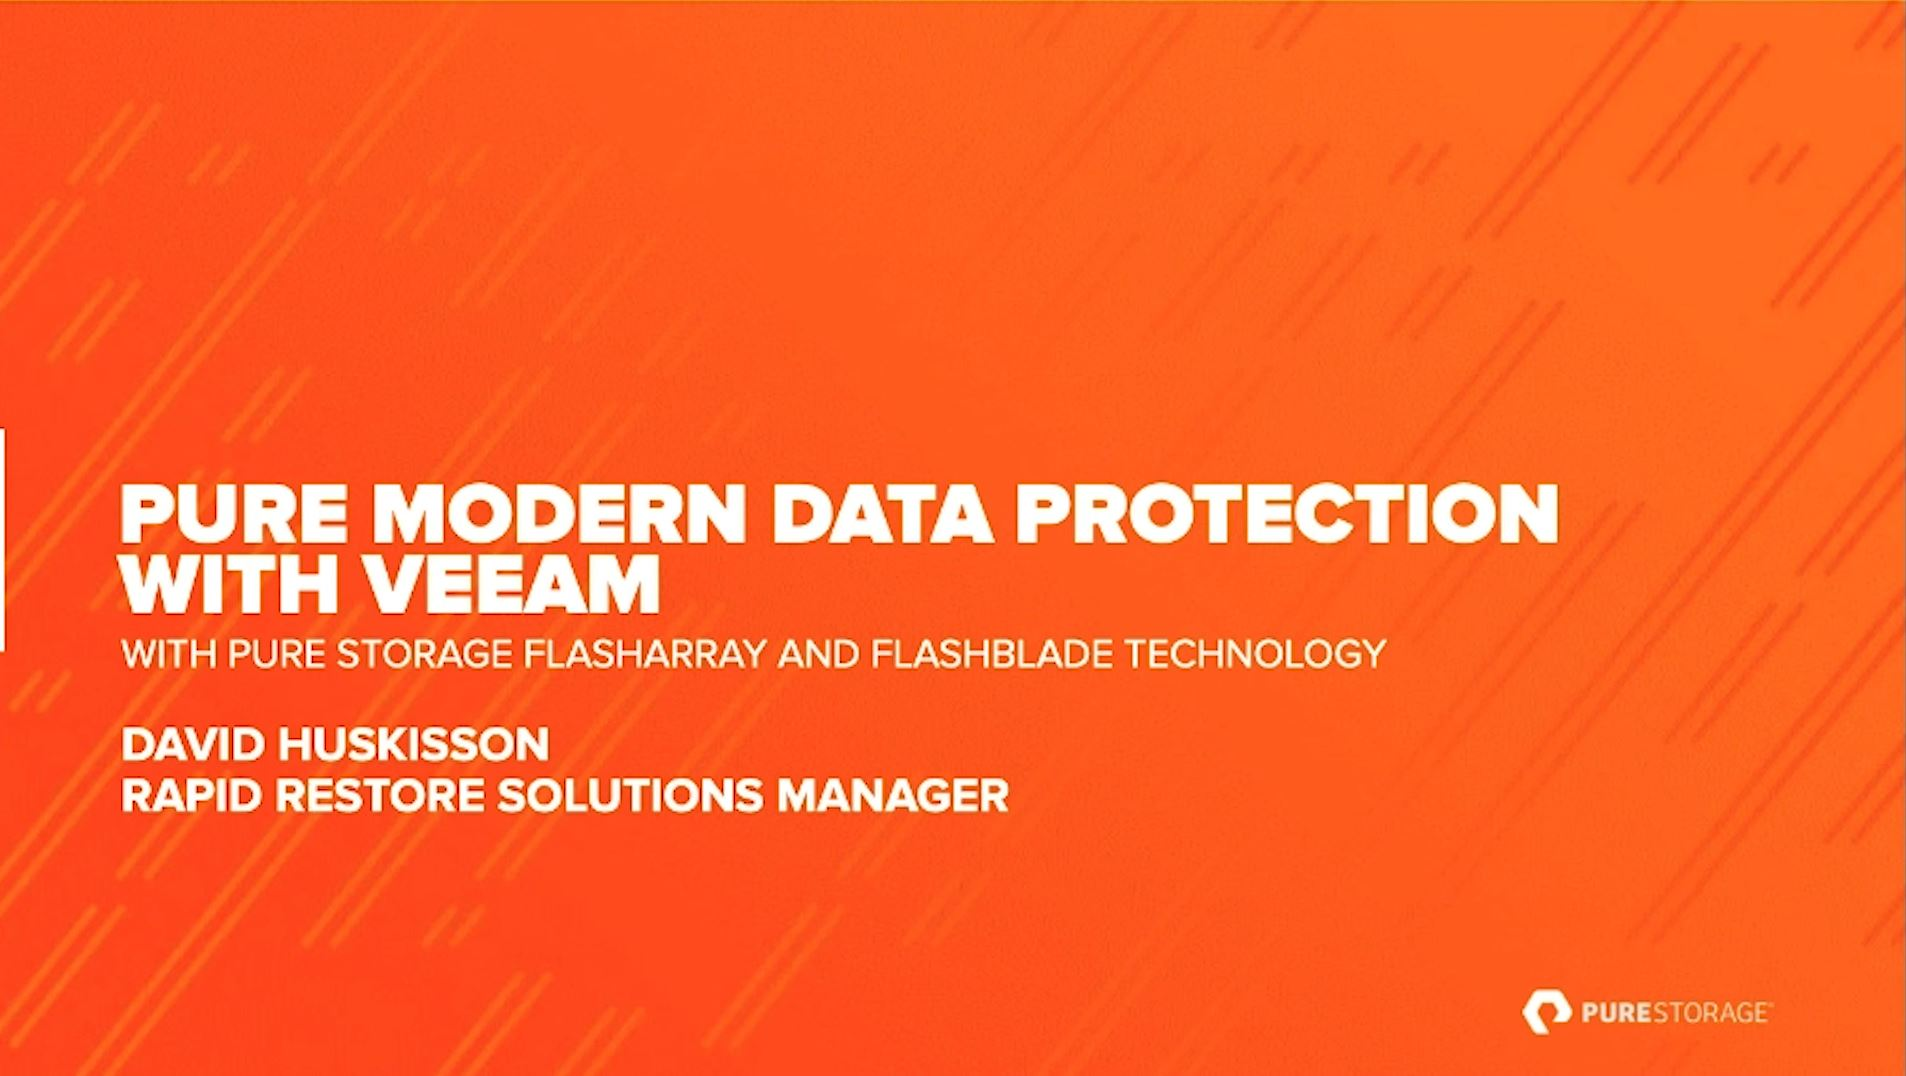 Pure modern data protection with Veeam